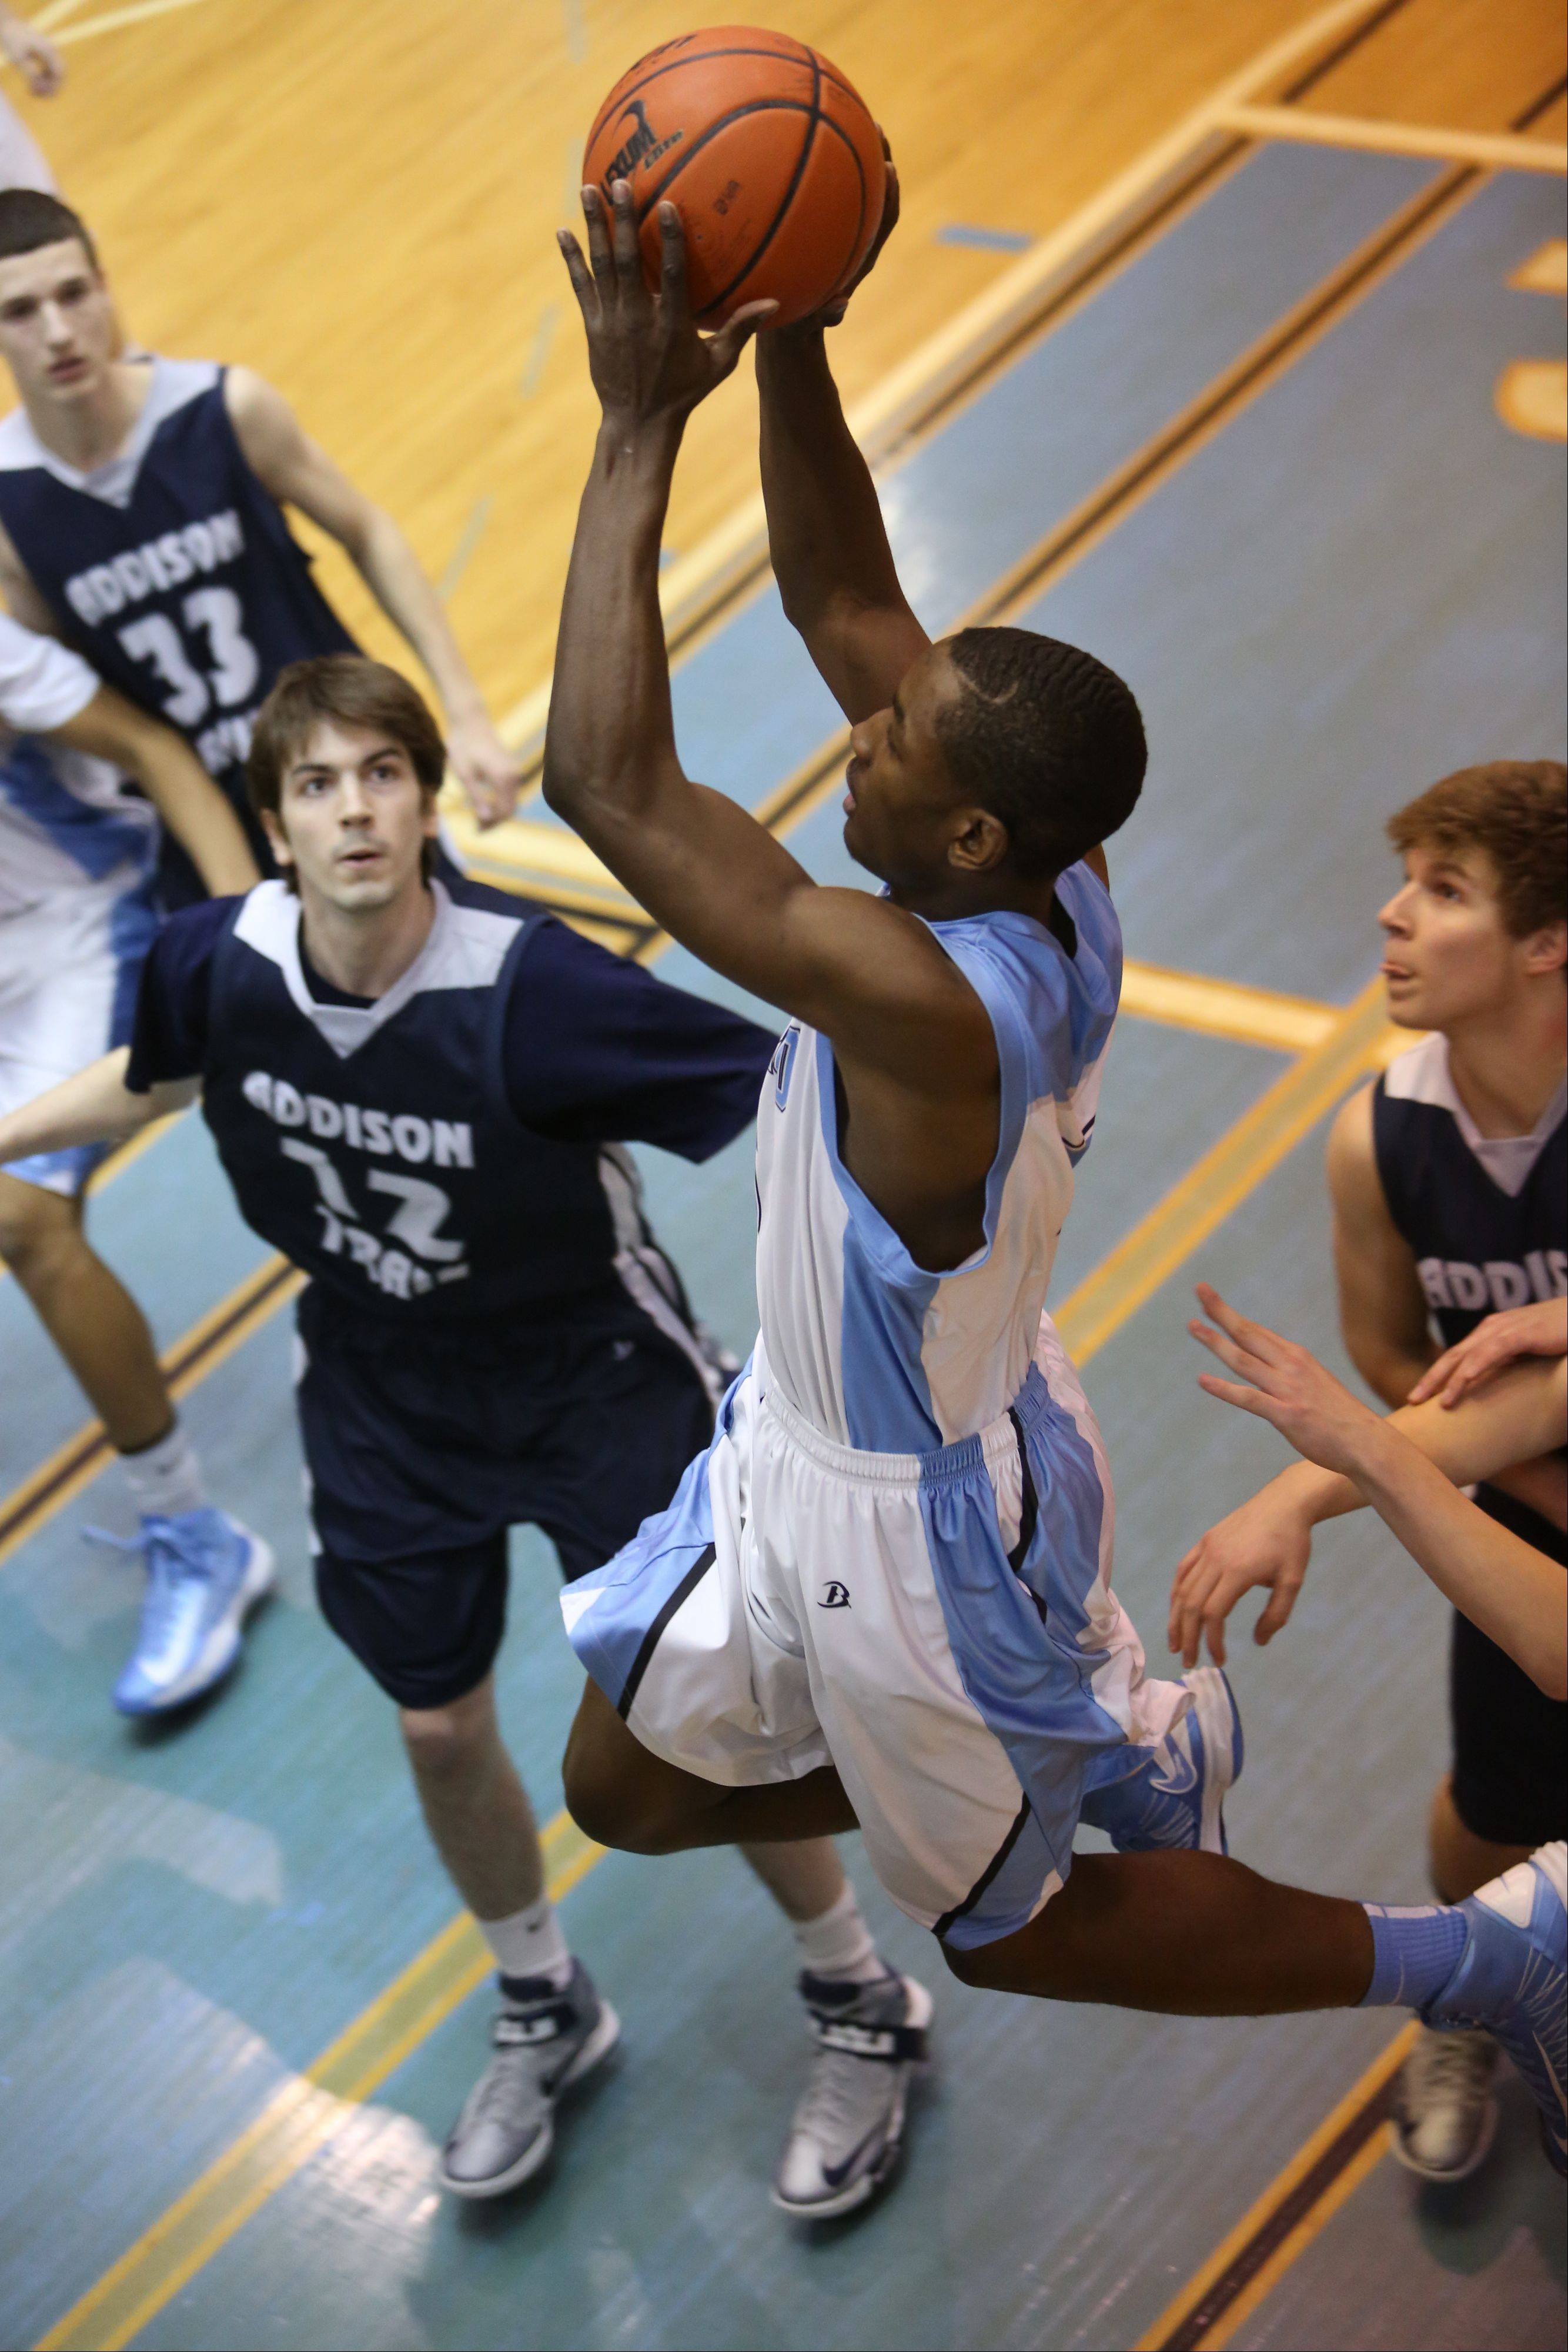 Addison Trail at Willowbrook boys basketball on Tuesday, February 12, 2013 in Villa Park.